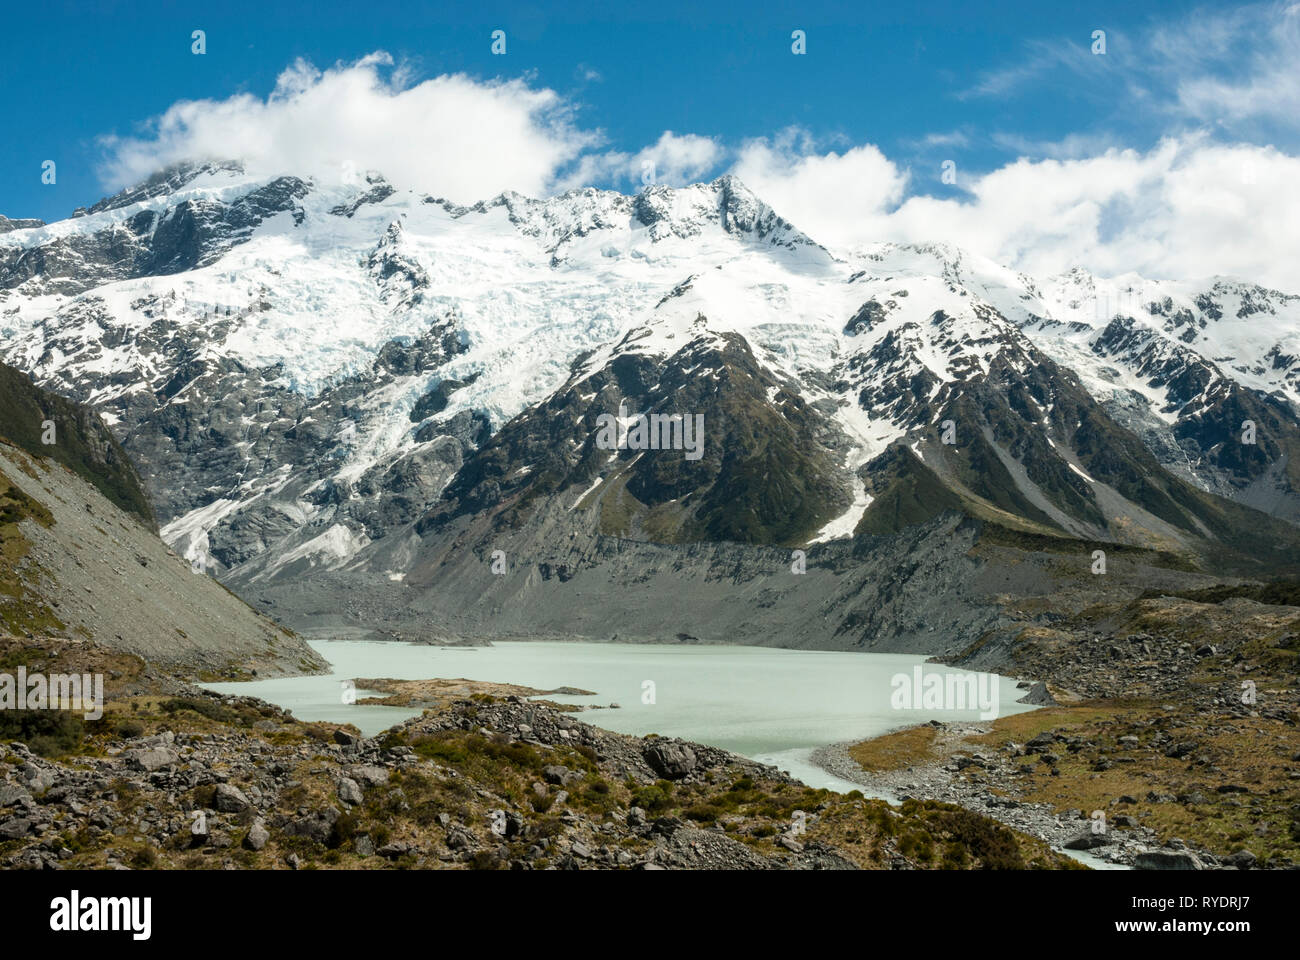 Melt water in Mueller Lake below snow capped Mount Sefton, NZ, in the southern Alps on a sunny day in spring. - Stock Image